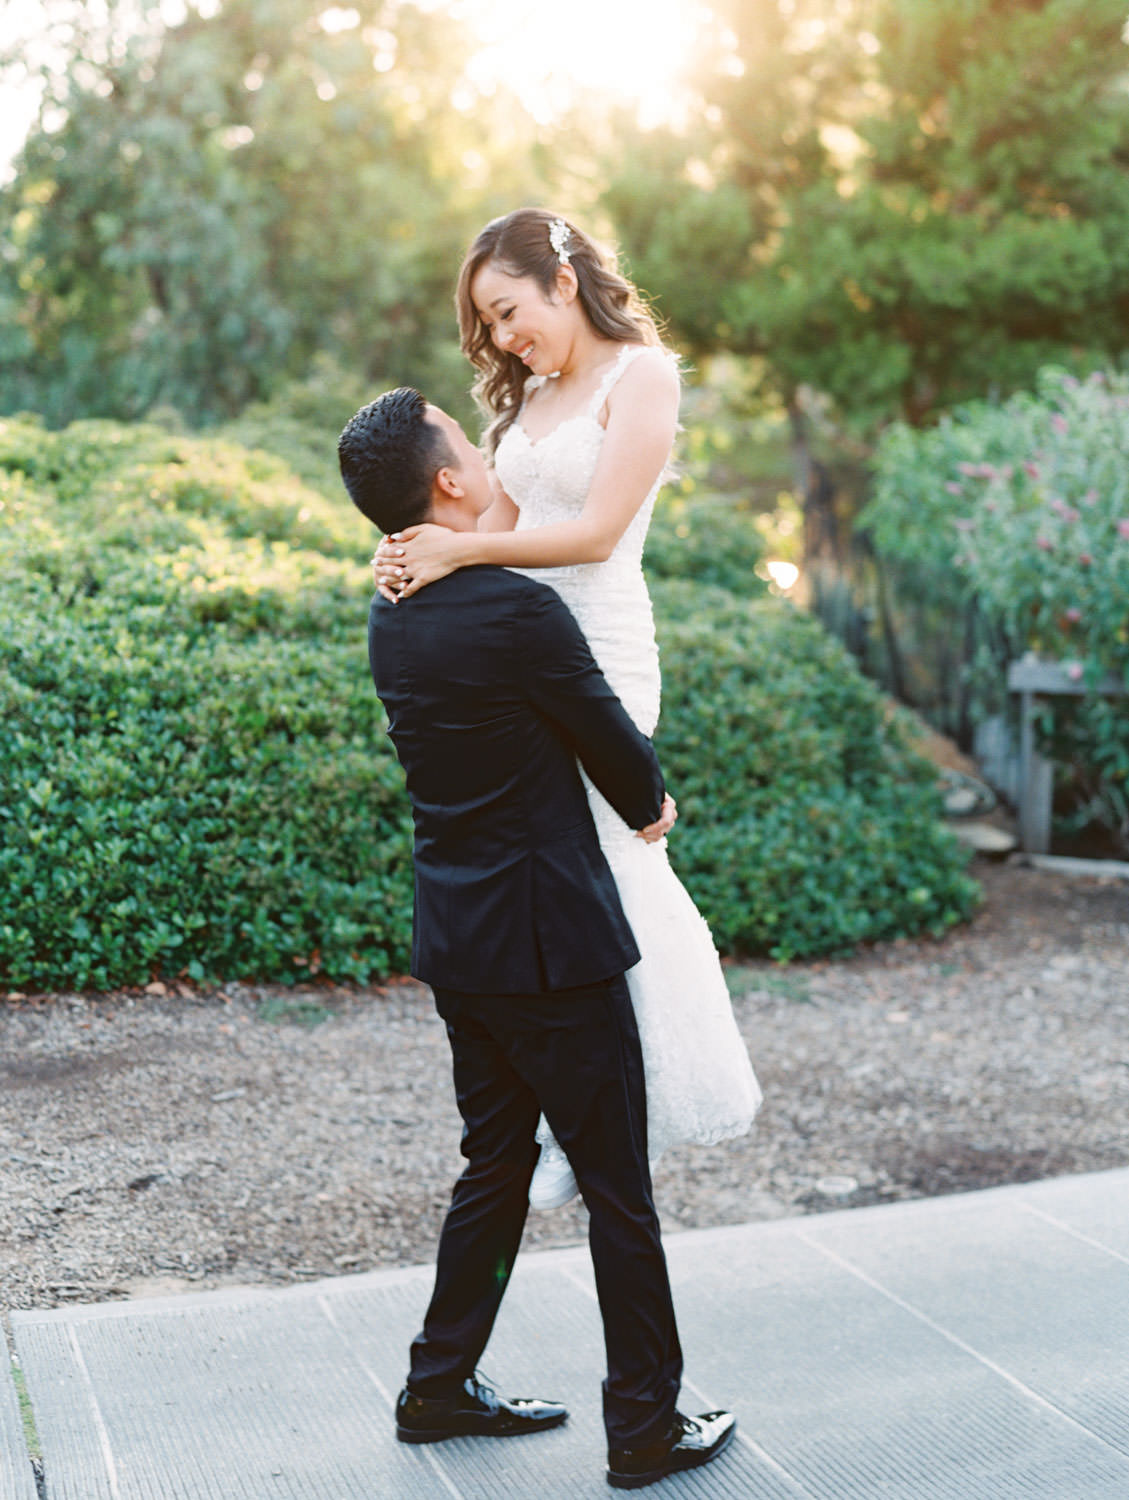 Groom in black tux and bride in a rose garden in a Martina Liana gown from The White Flower. Wedding at Rancho Bernardo Inn. Film photo by Cavin Elizabeth Photography